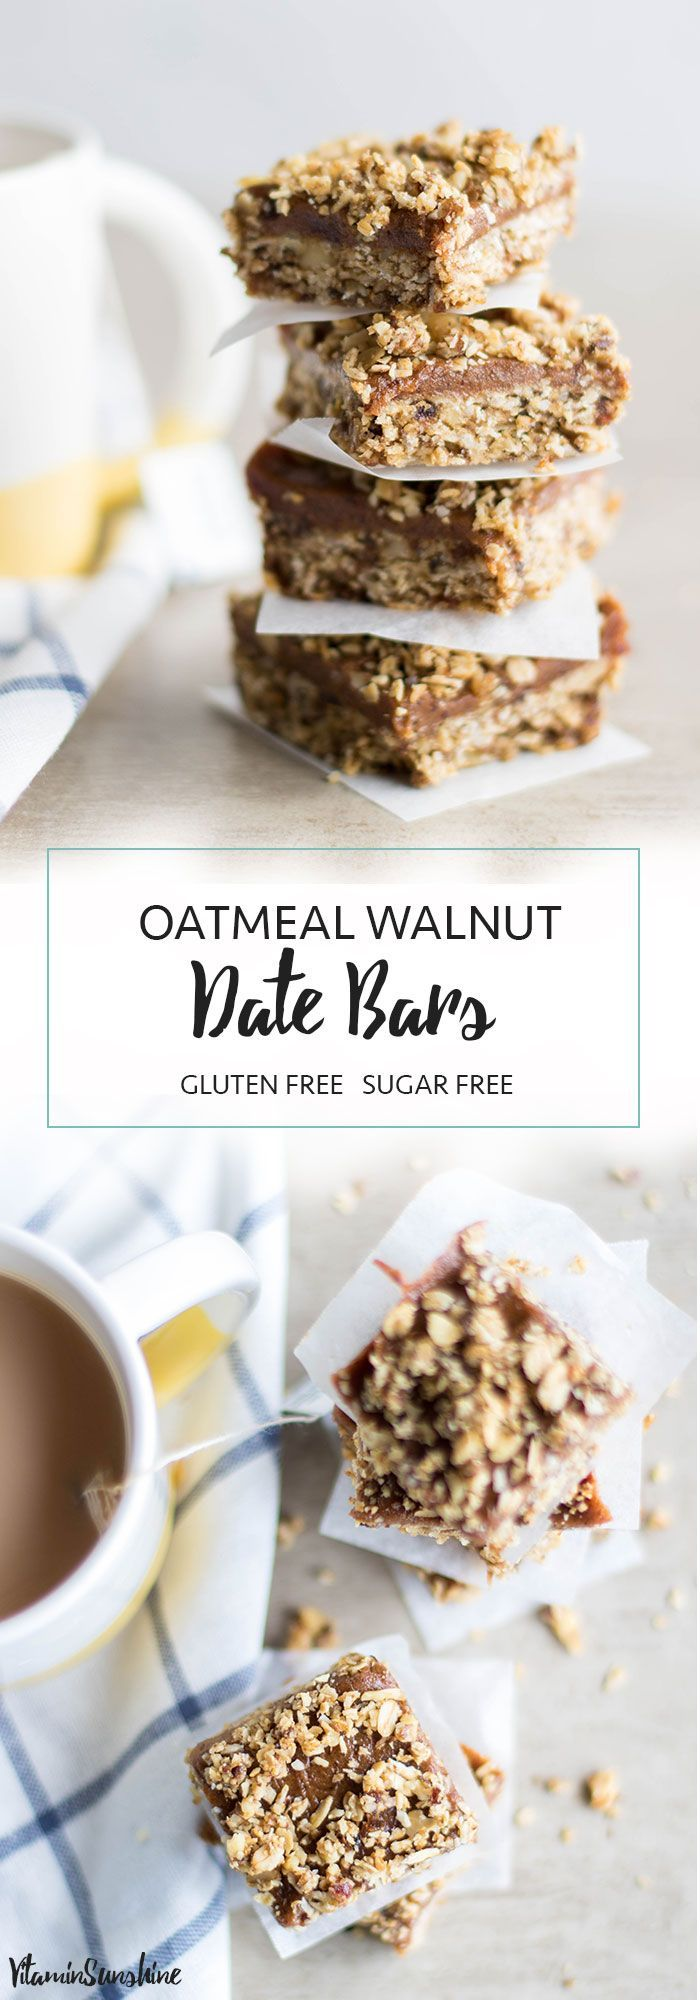 Gluten Free Date Bars / These delicious snack bars are full of healthy, energizing dates, oatmeal and walnuts. 100% clean, 110% caramelly-deliciousness. #dates #datebars #cookies #glutenfree #sugarfree #oatmeal #walnuts